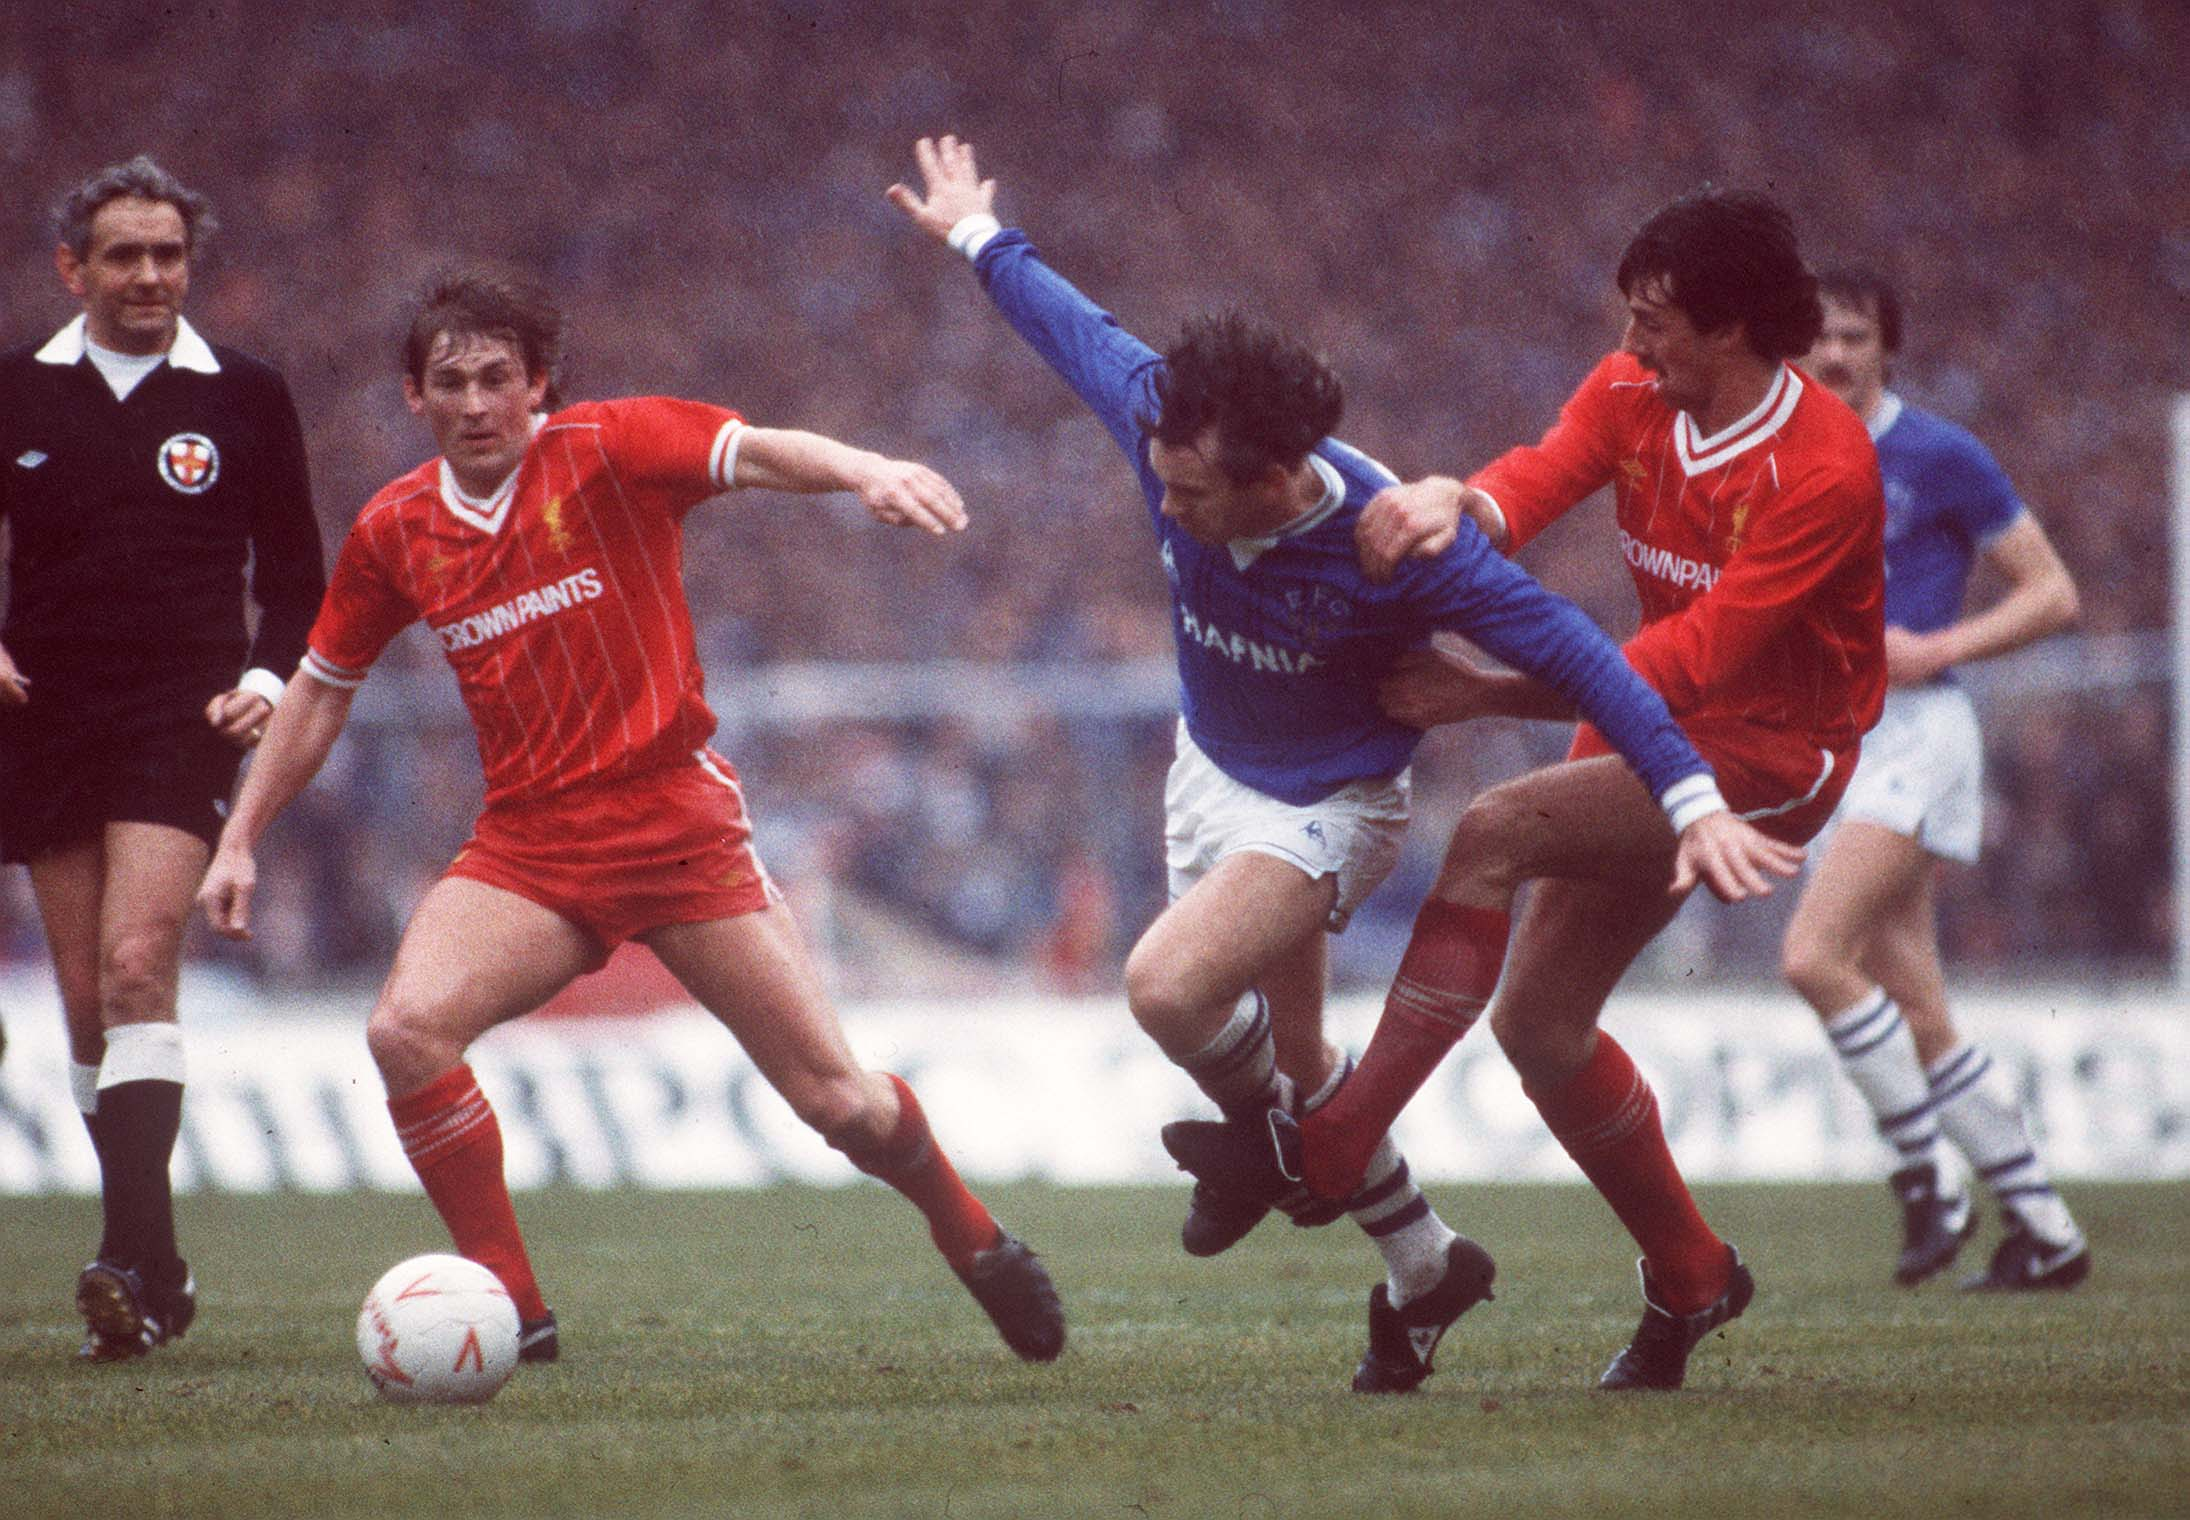 Peter Reid of Everton takes on Kenny Dalglish and Mark Lawrenson in a cup final at Wembley, 1984